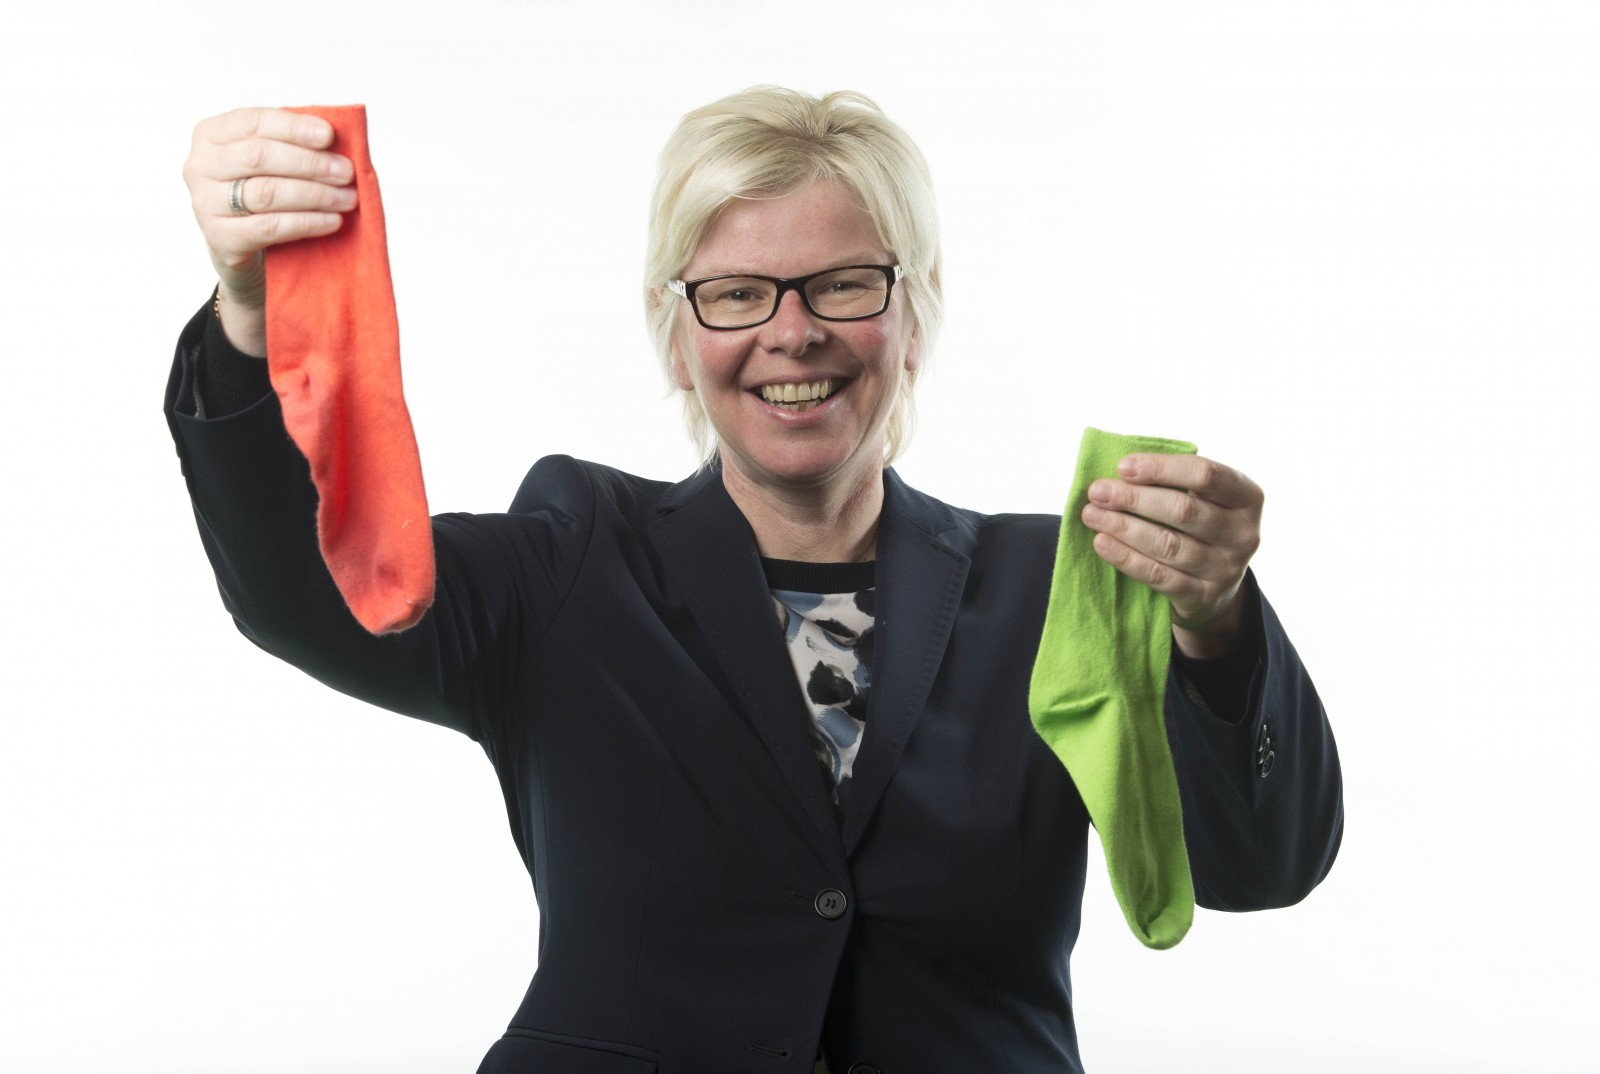 FINALLY! Scientists have unravelled the mystery of why socks go missing